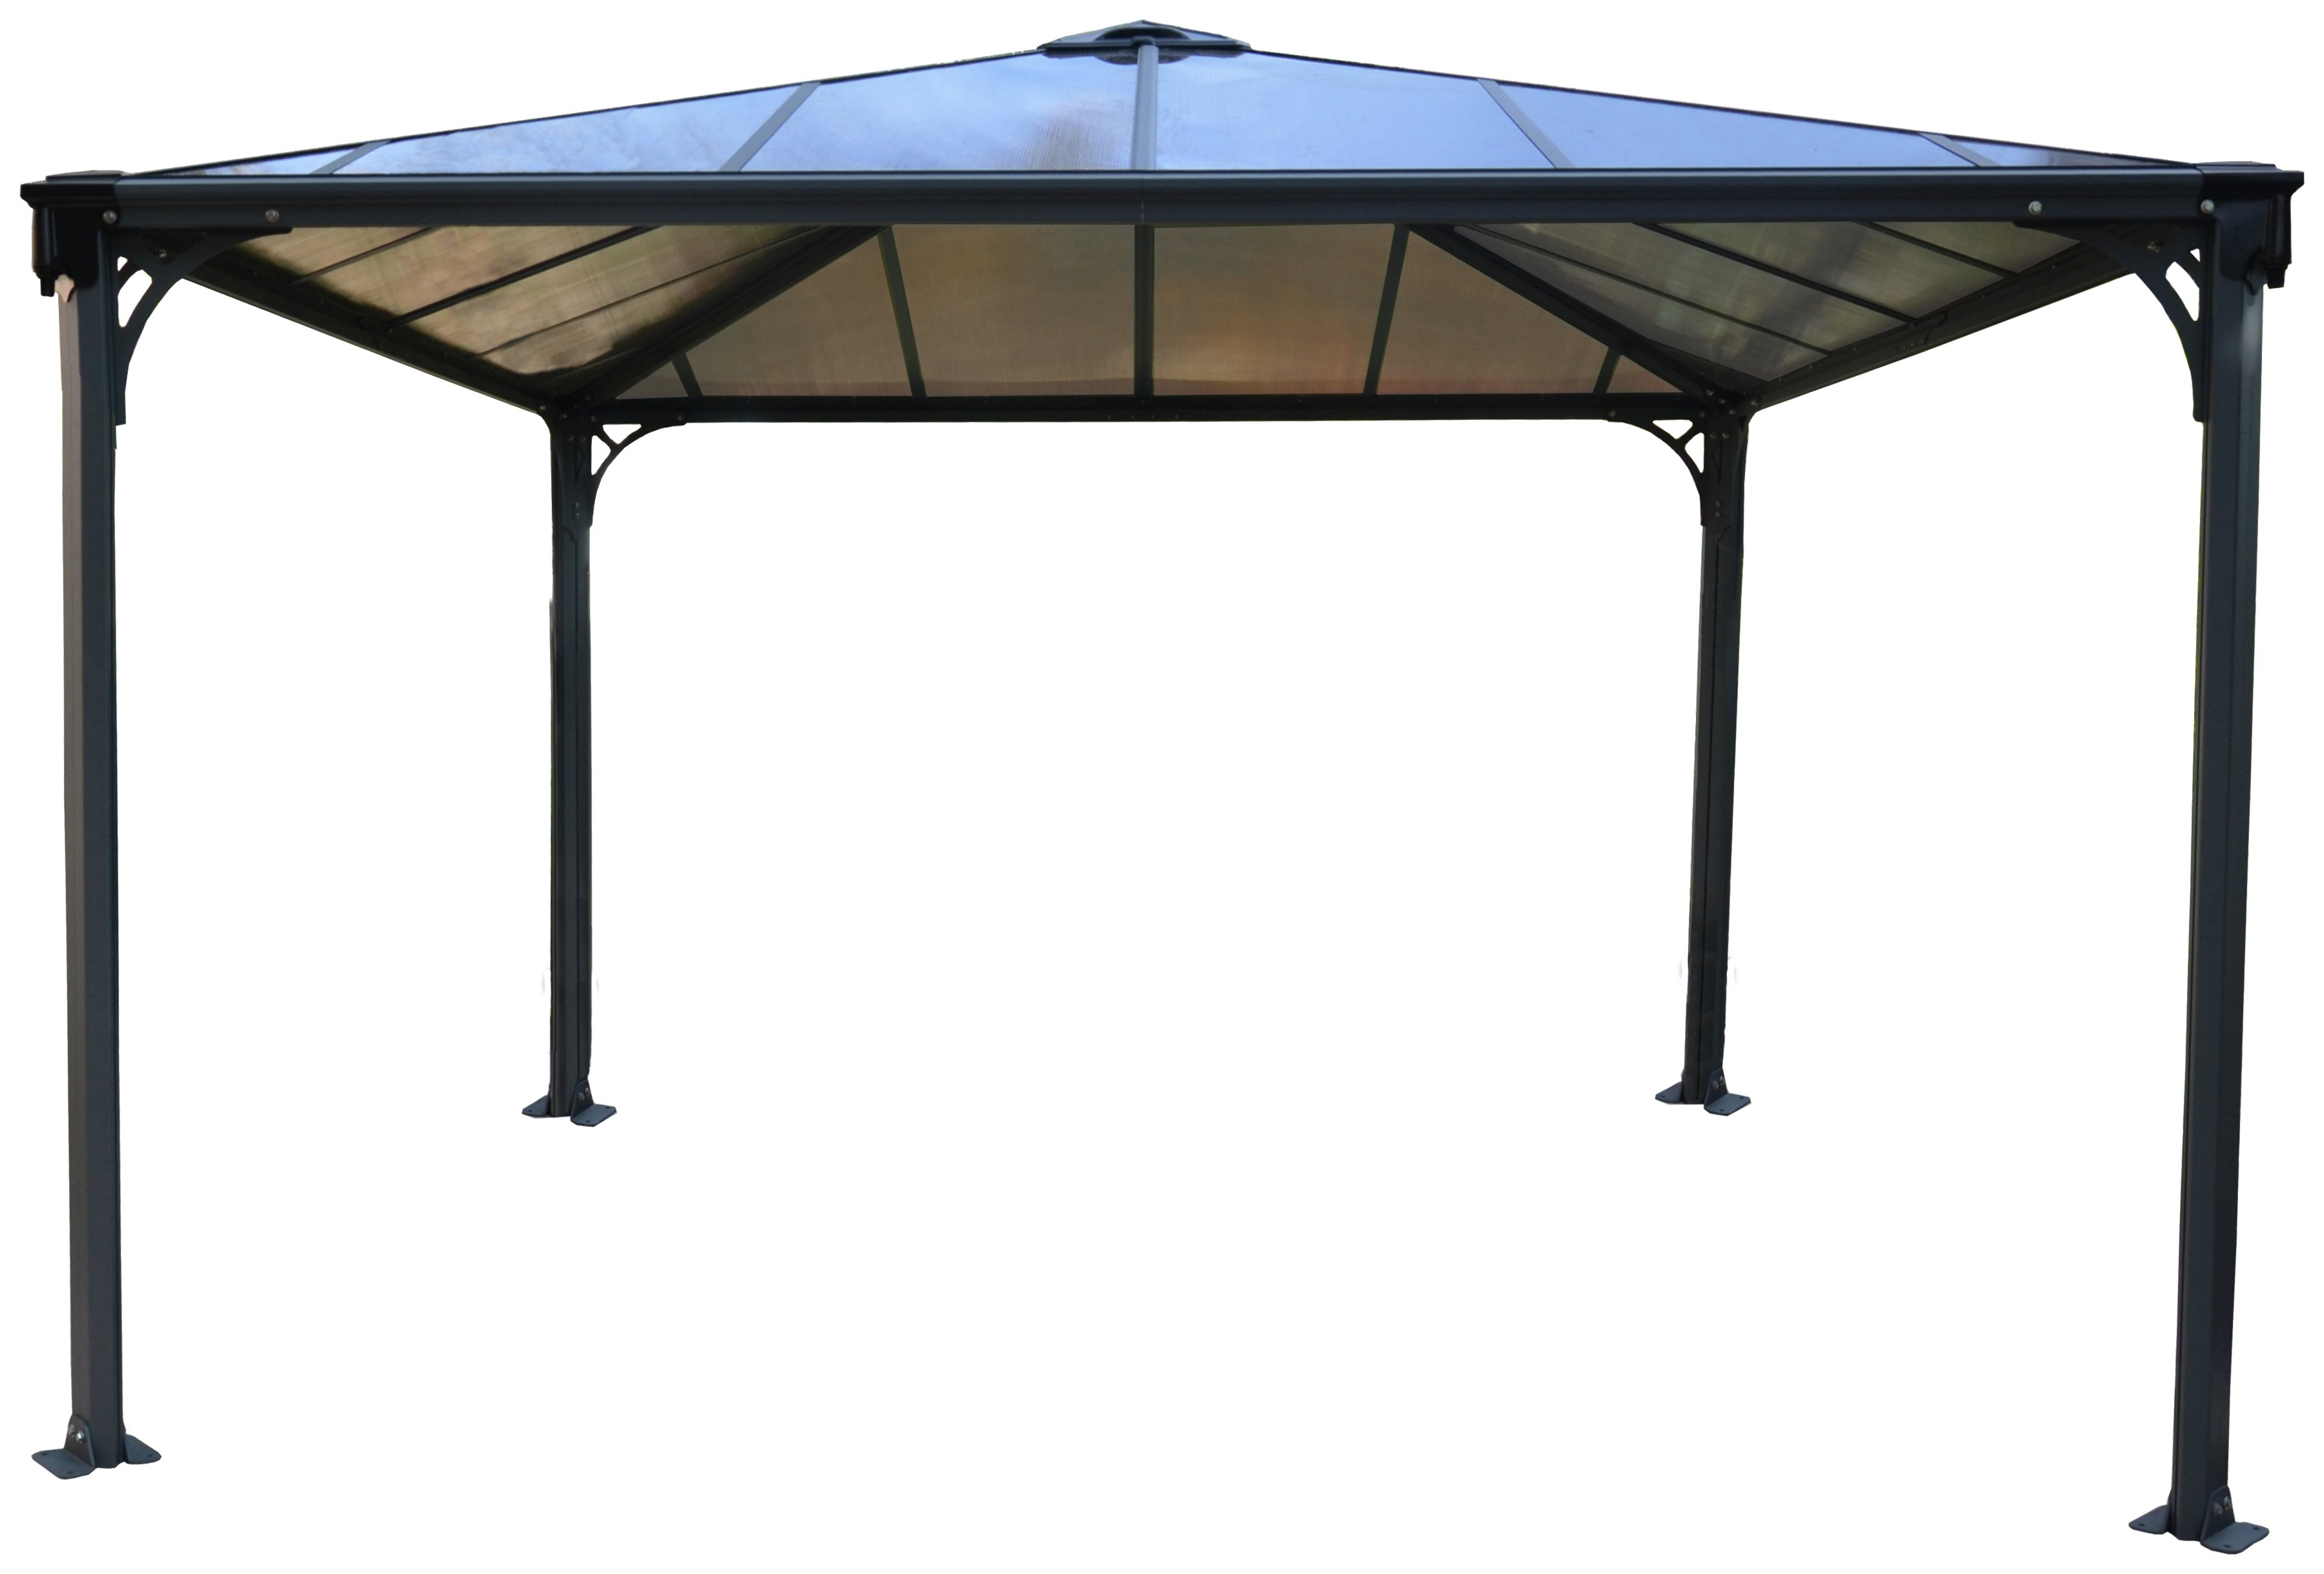 Palram Palermo Gazebo 11.8x11.8ft - Dark Grey. lowest price